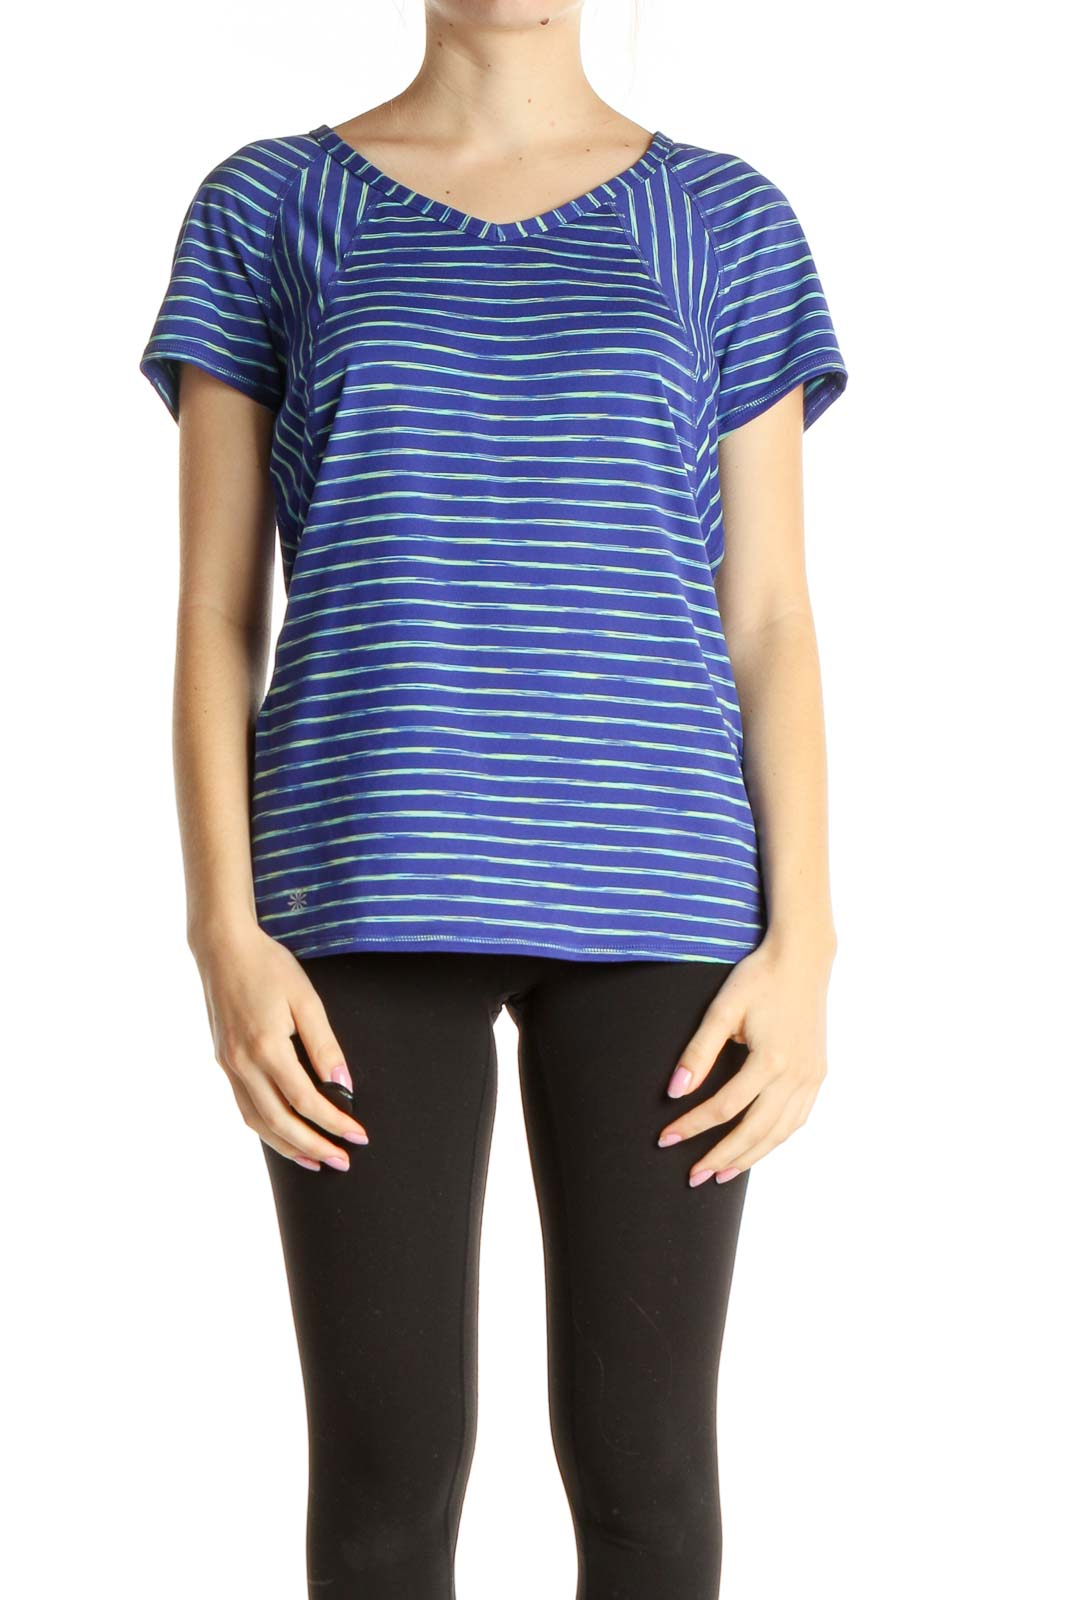 Blue Striped Activewear T-Shirt Front